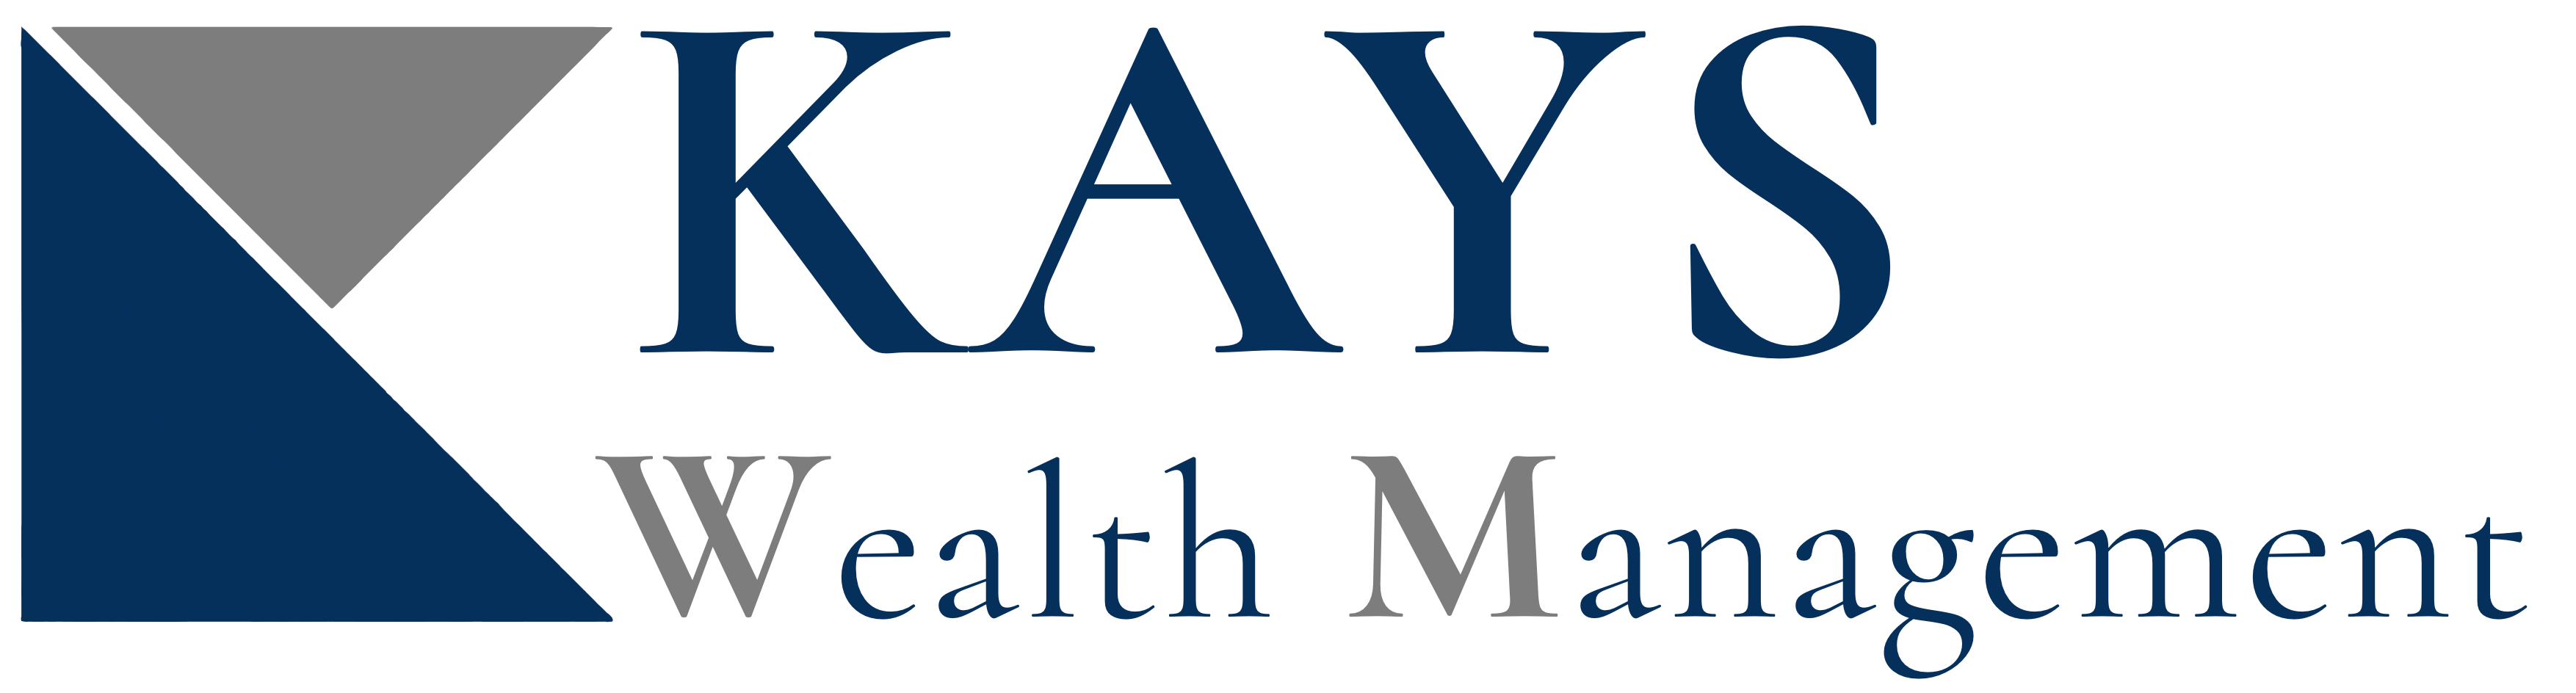 Kays Wealth Management